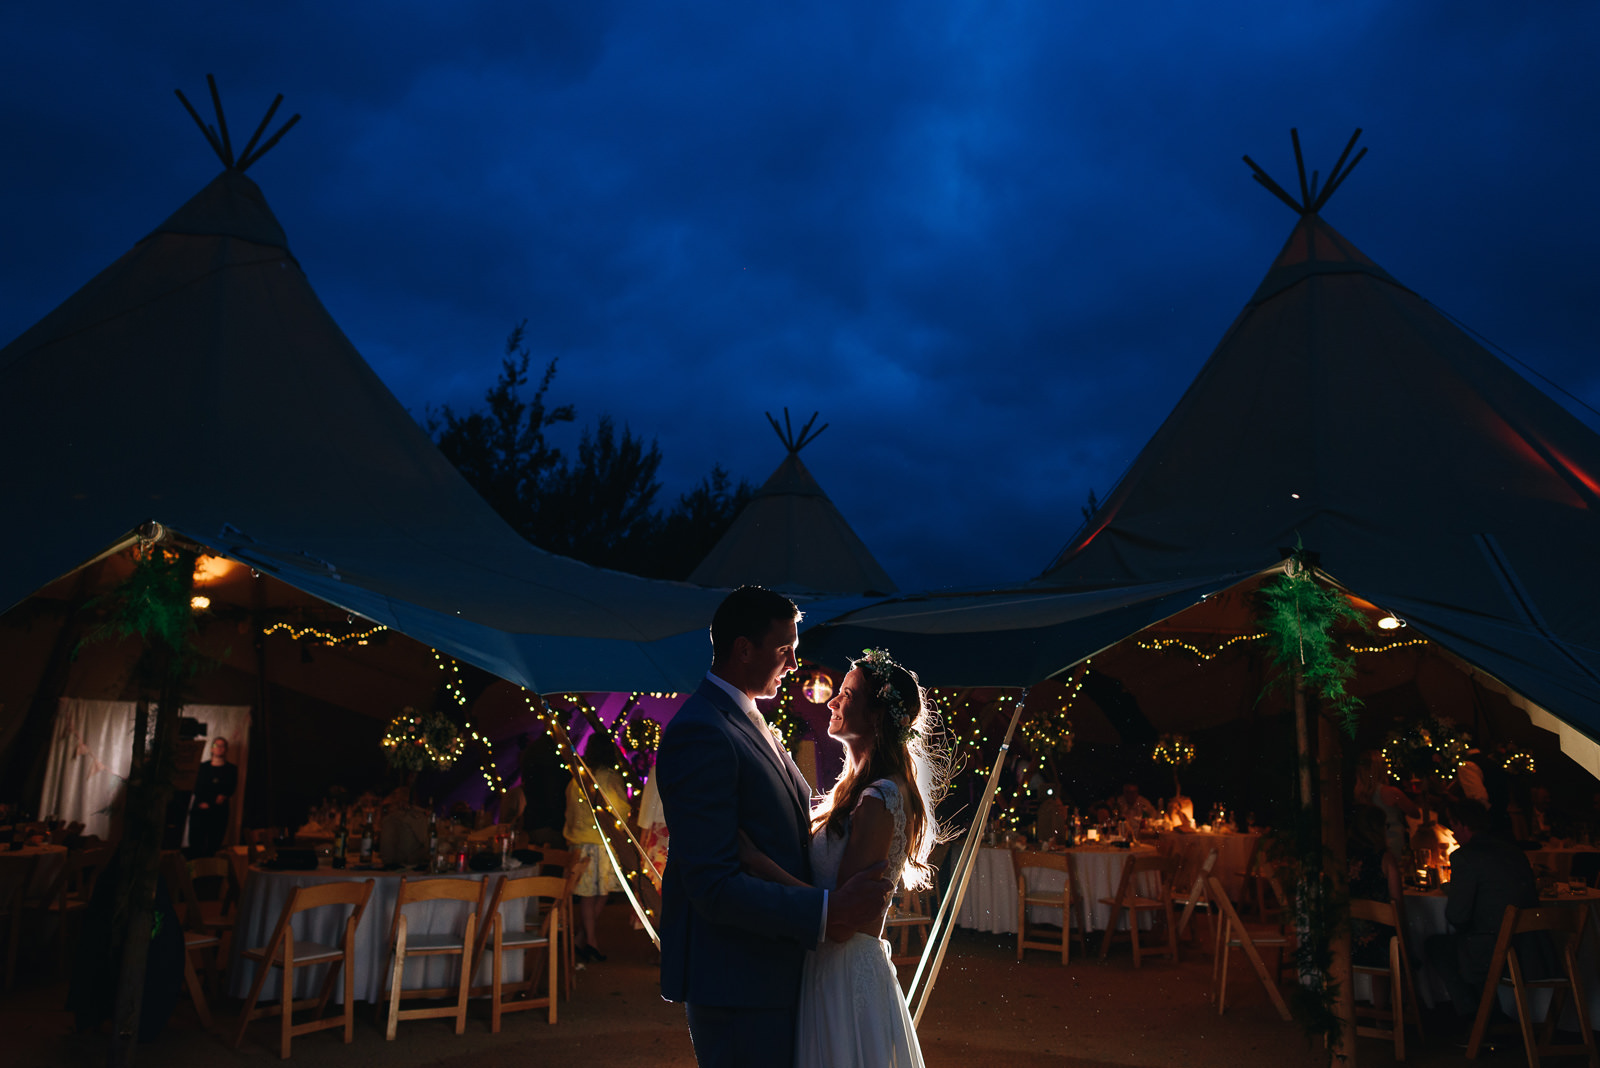 amazing night time wedding portrait in front of a tipi